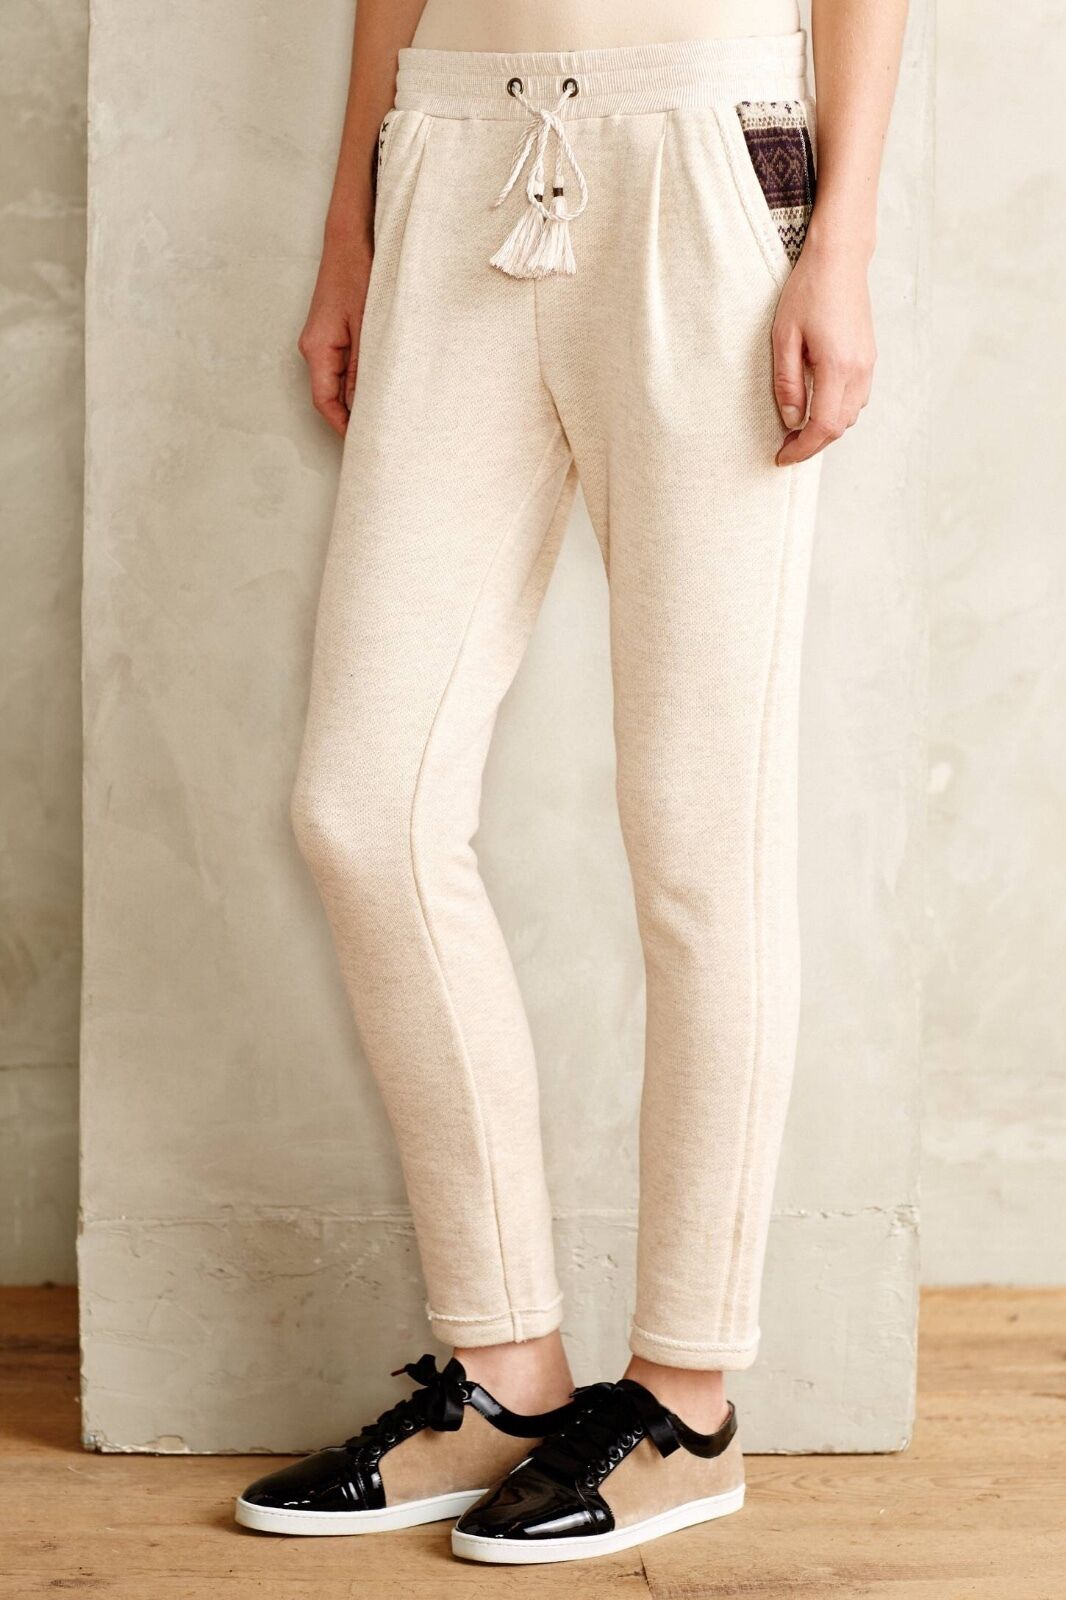 NEW Anthropologie  Lilka Hadley Joggers Pants Cream color  Size L Large